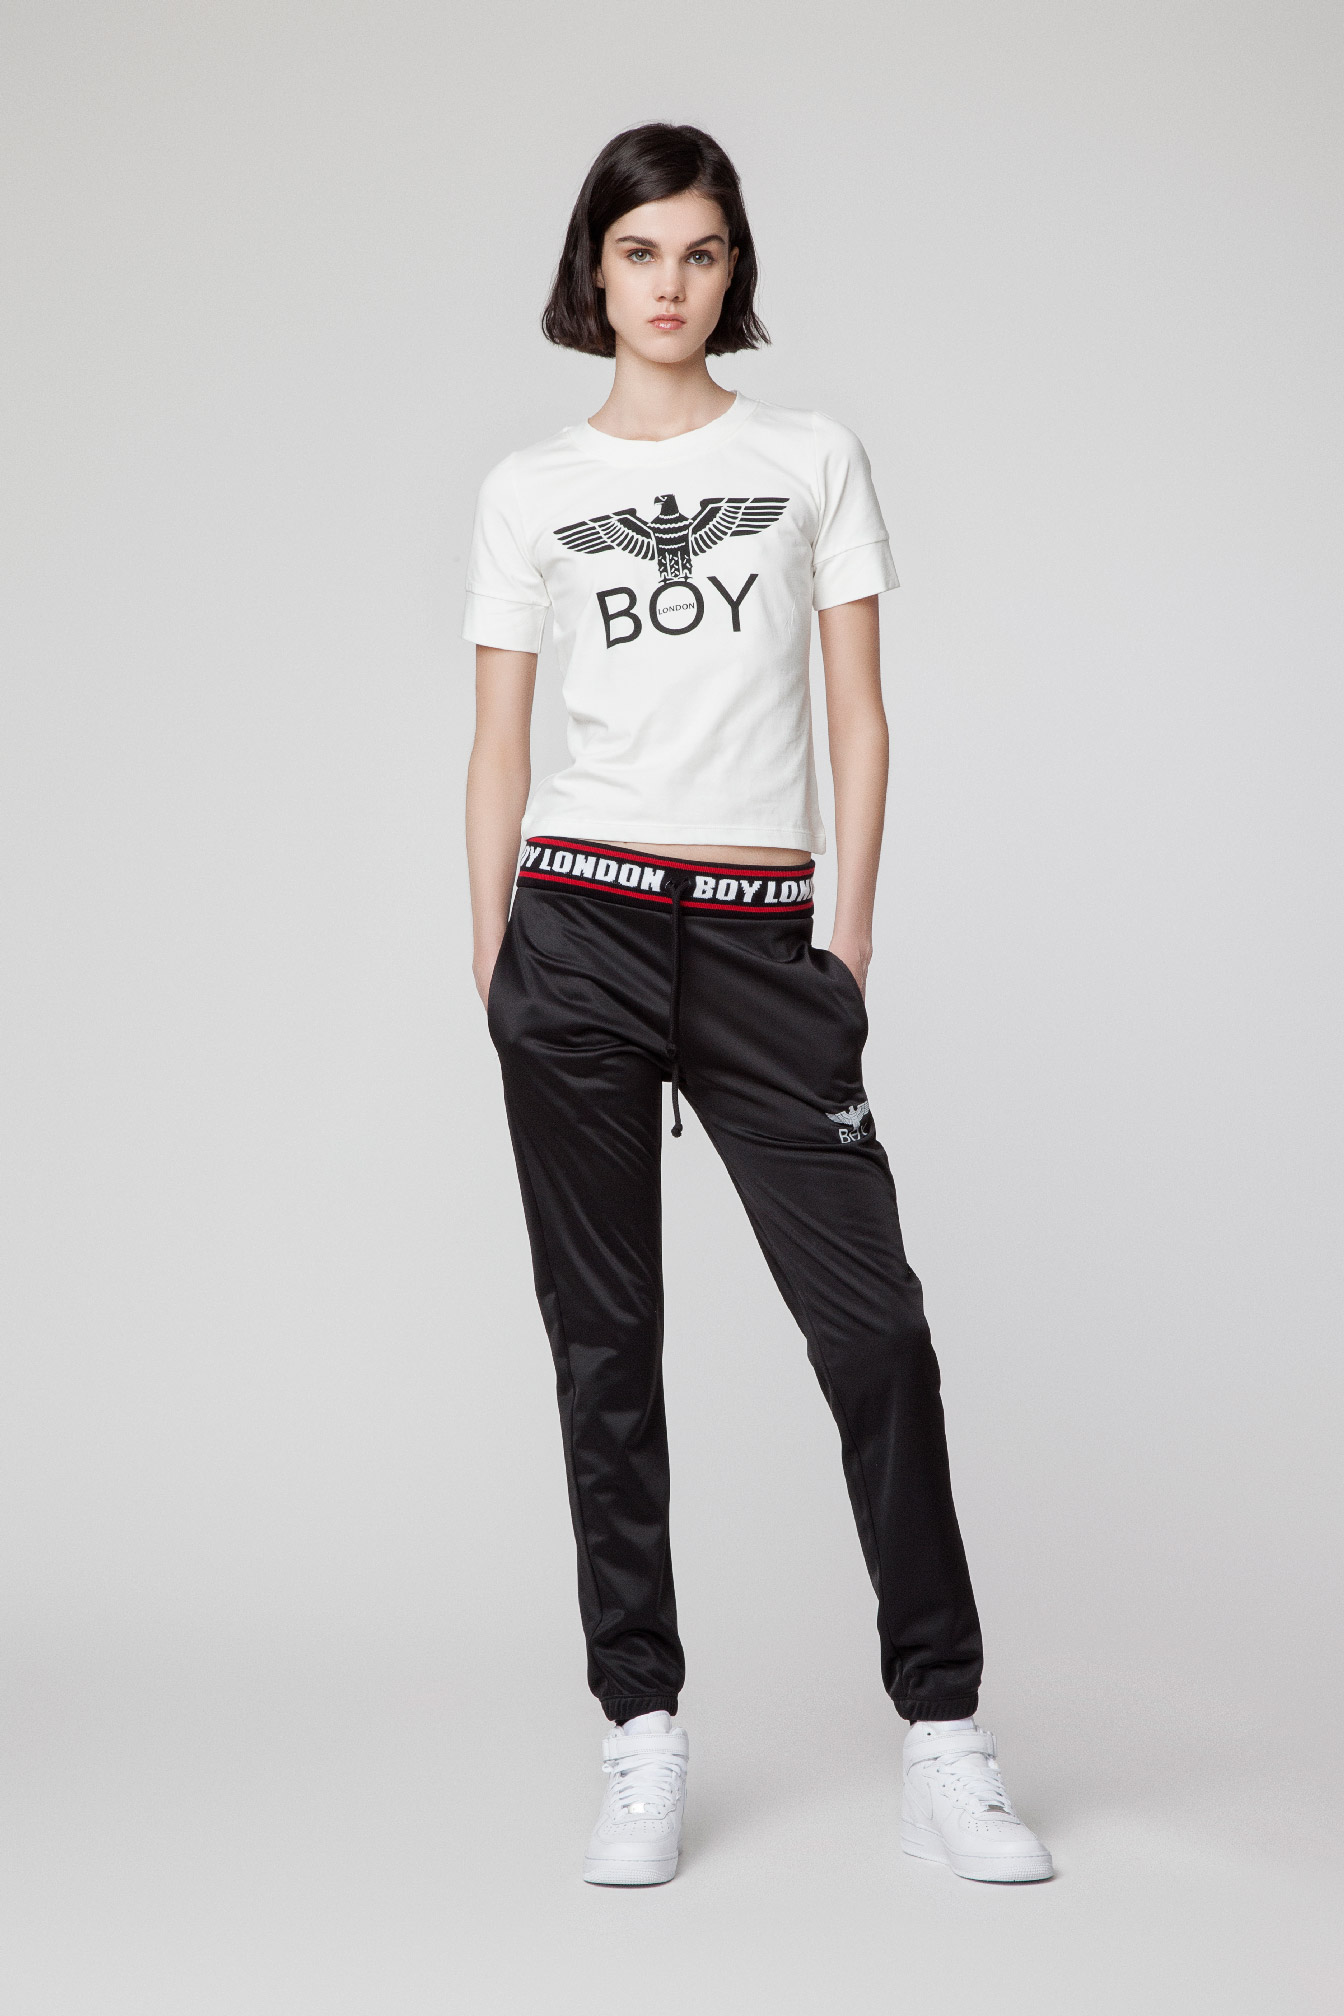 T-SHIRT - BLD2050 - BOY LONDON